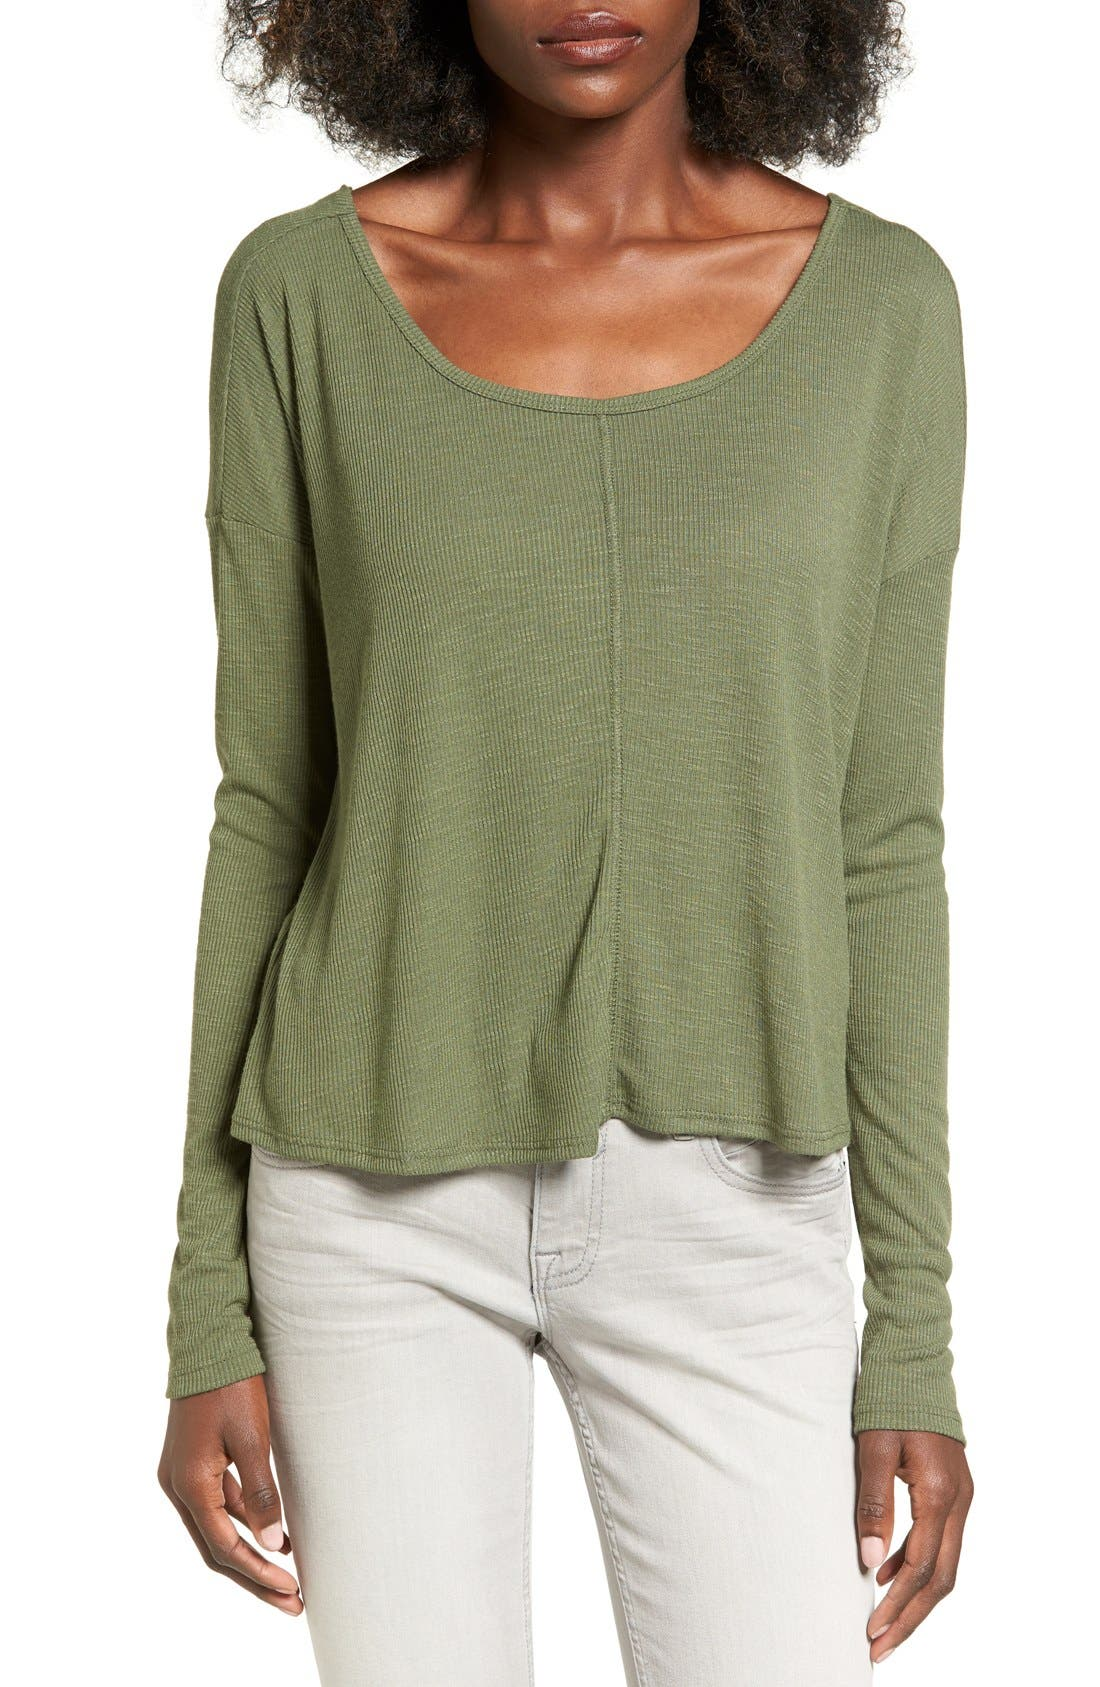 CHLOE & KATIE, Knotted Drape Back Tee, Main thumbnail 1, color, 300